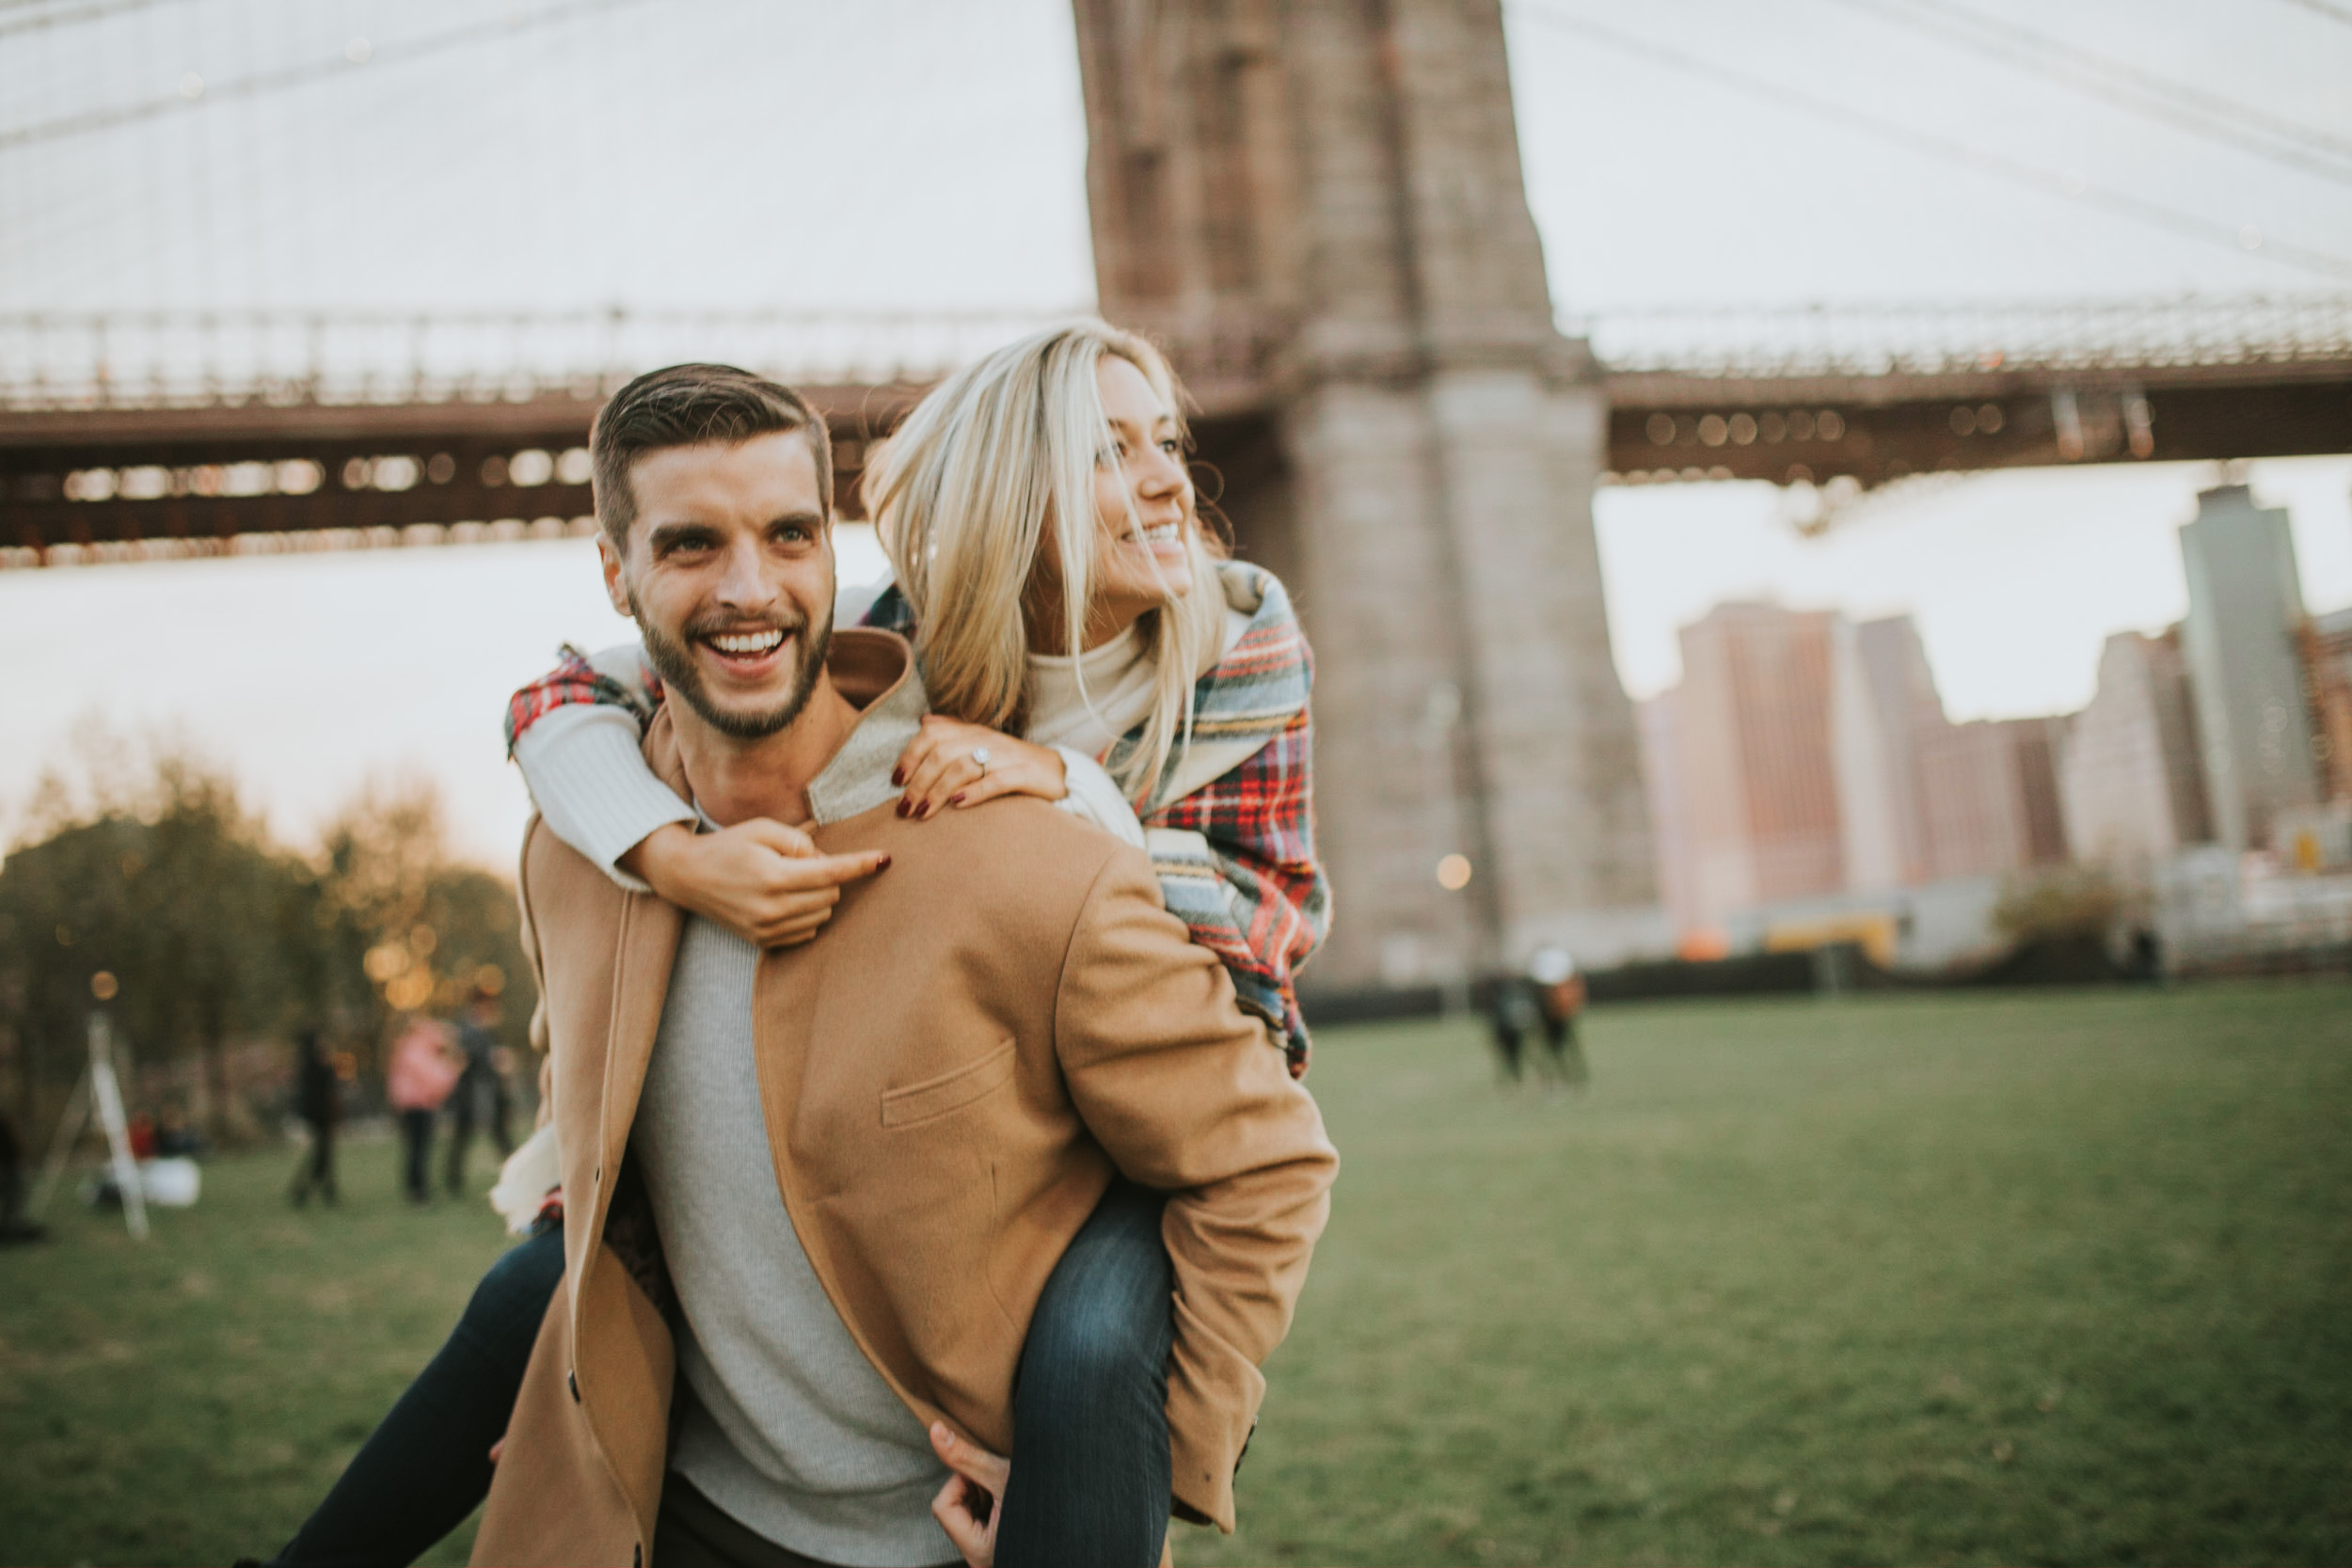 Colorful Fall NYC Engagement Session_Polly C Photography 1721162854.jpg